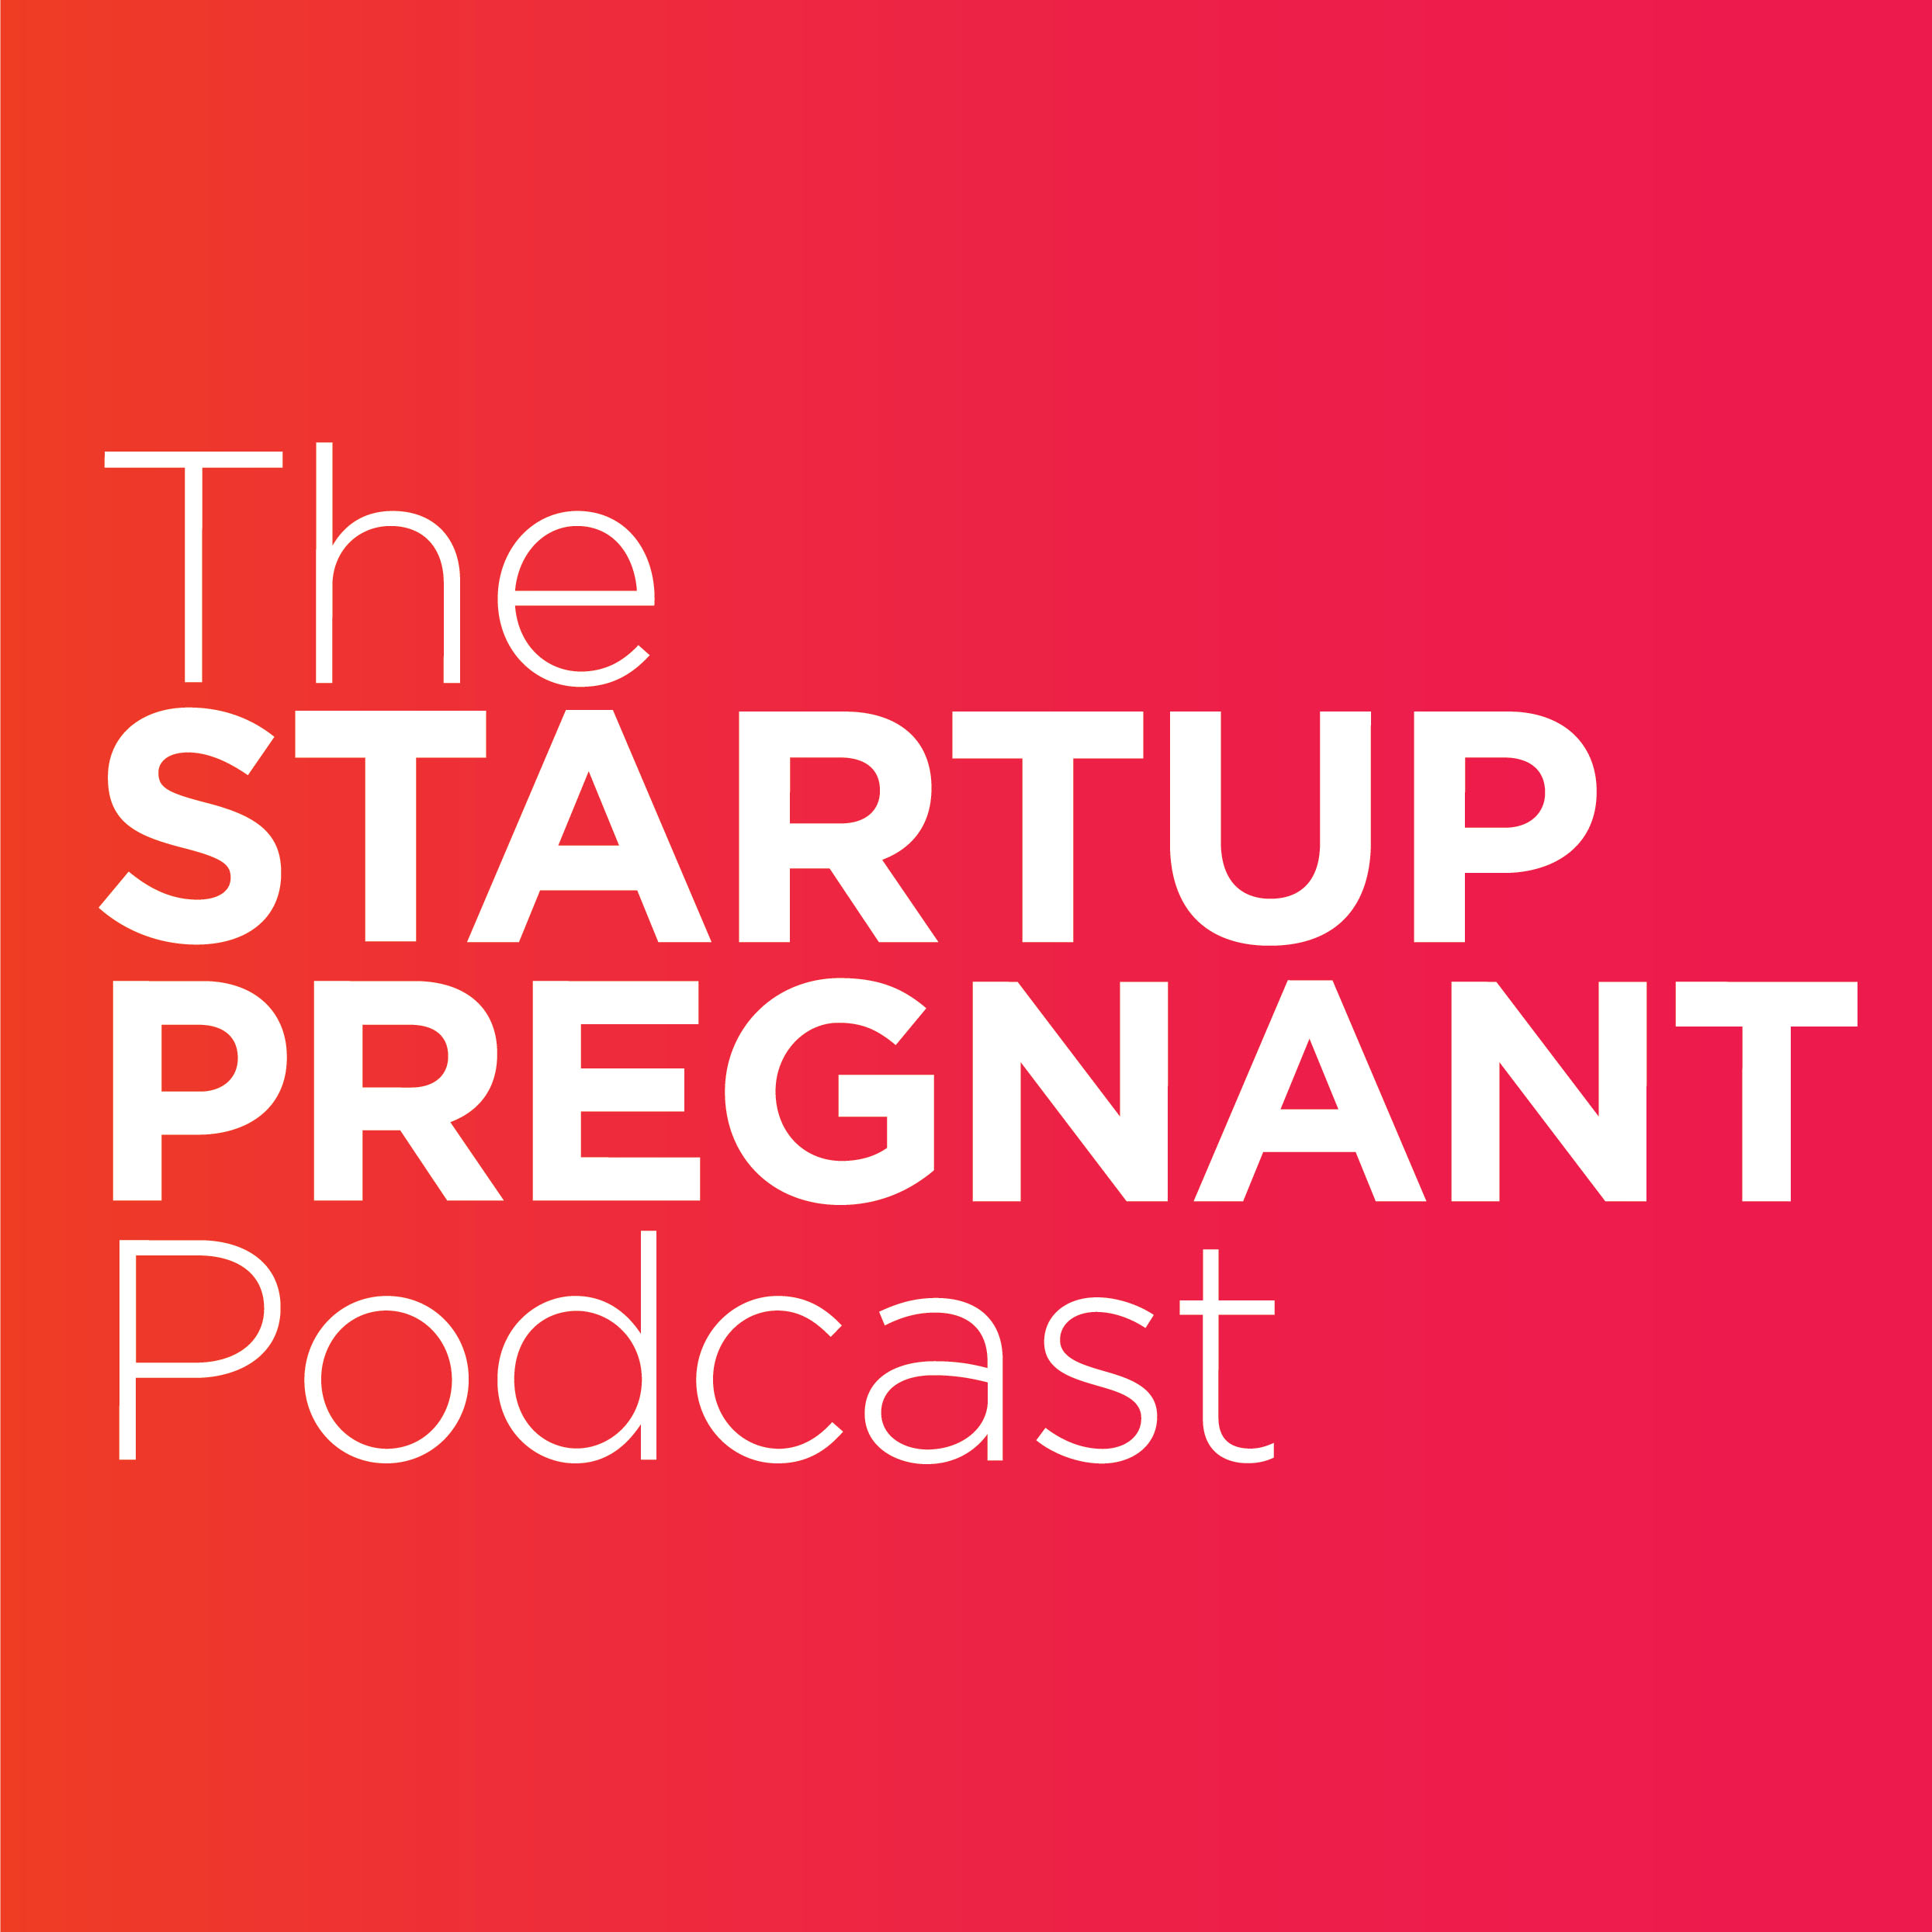 The Startup Pregnant Podcast show art